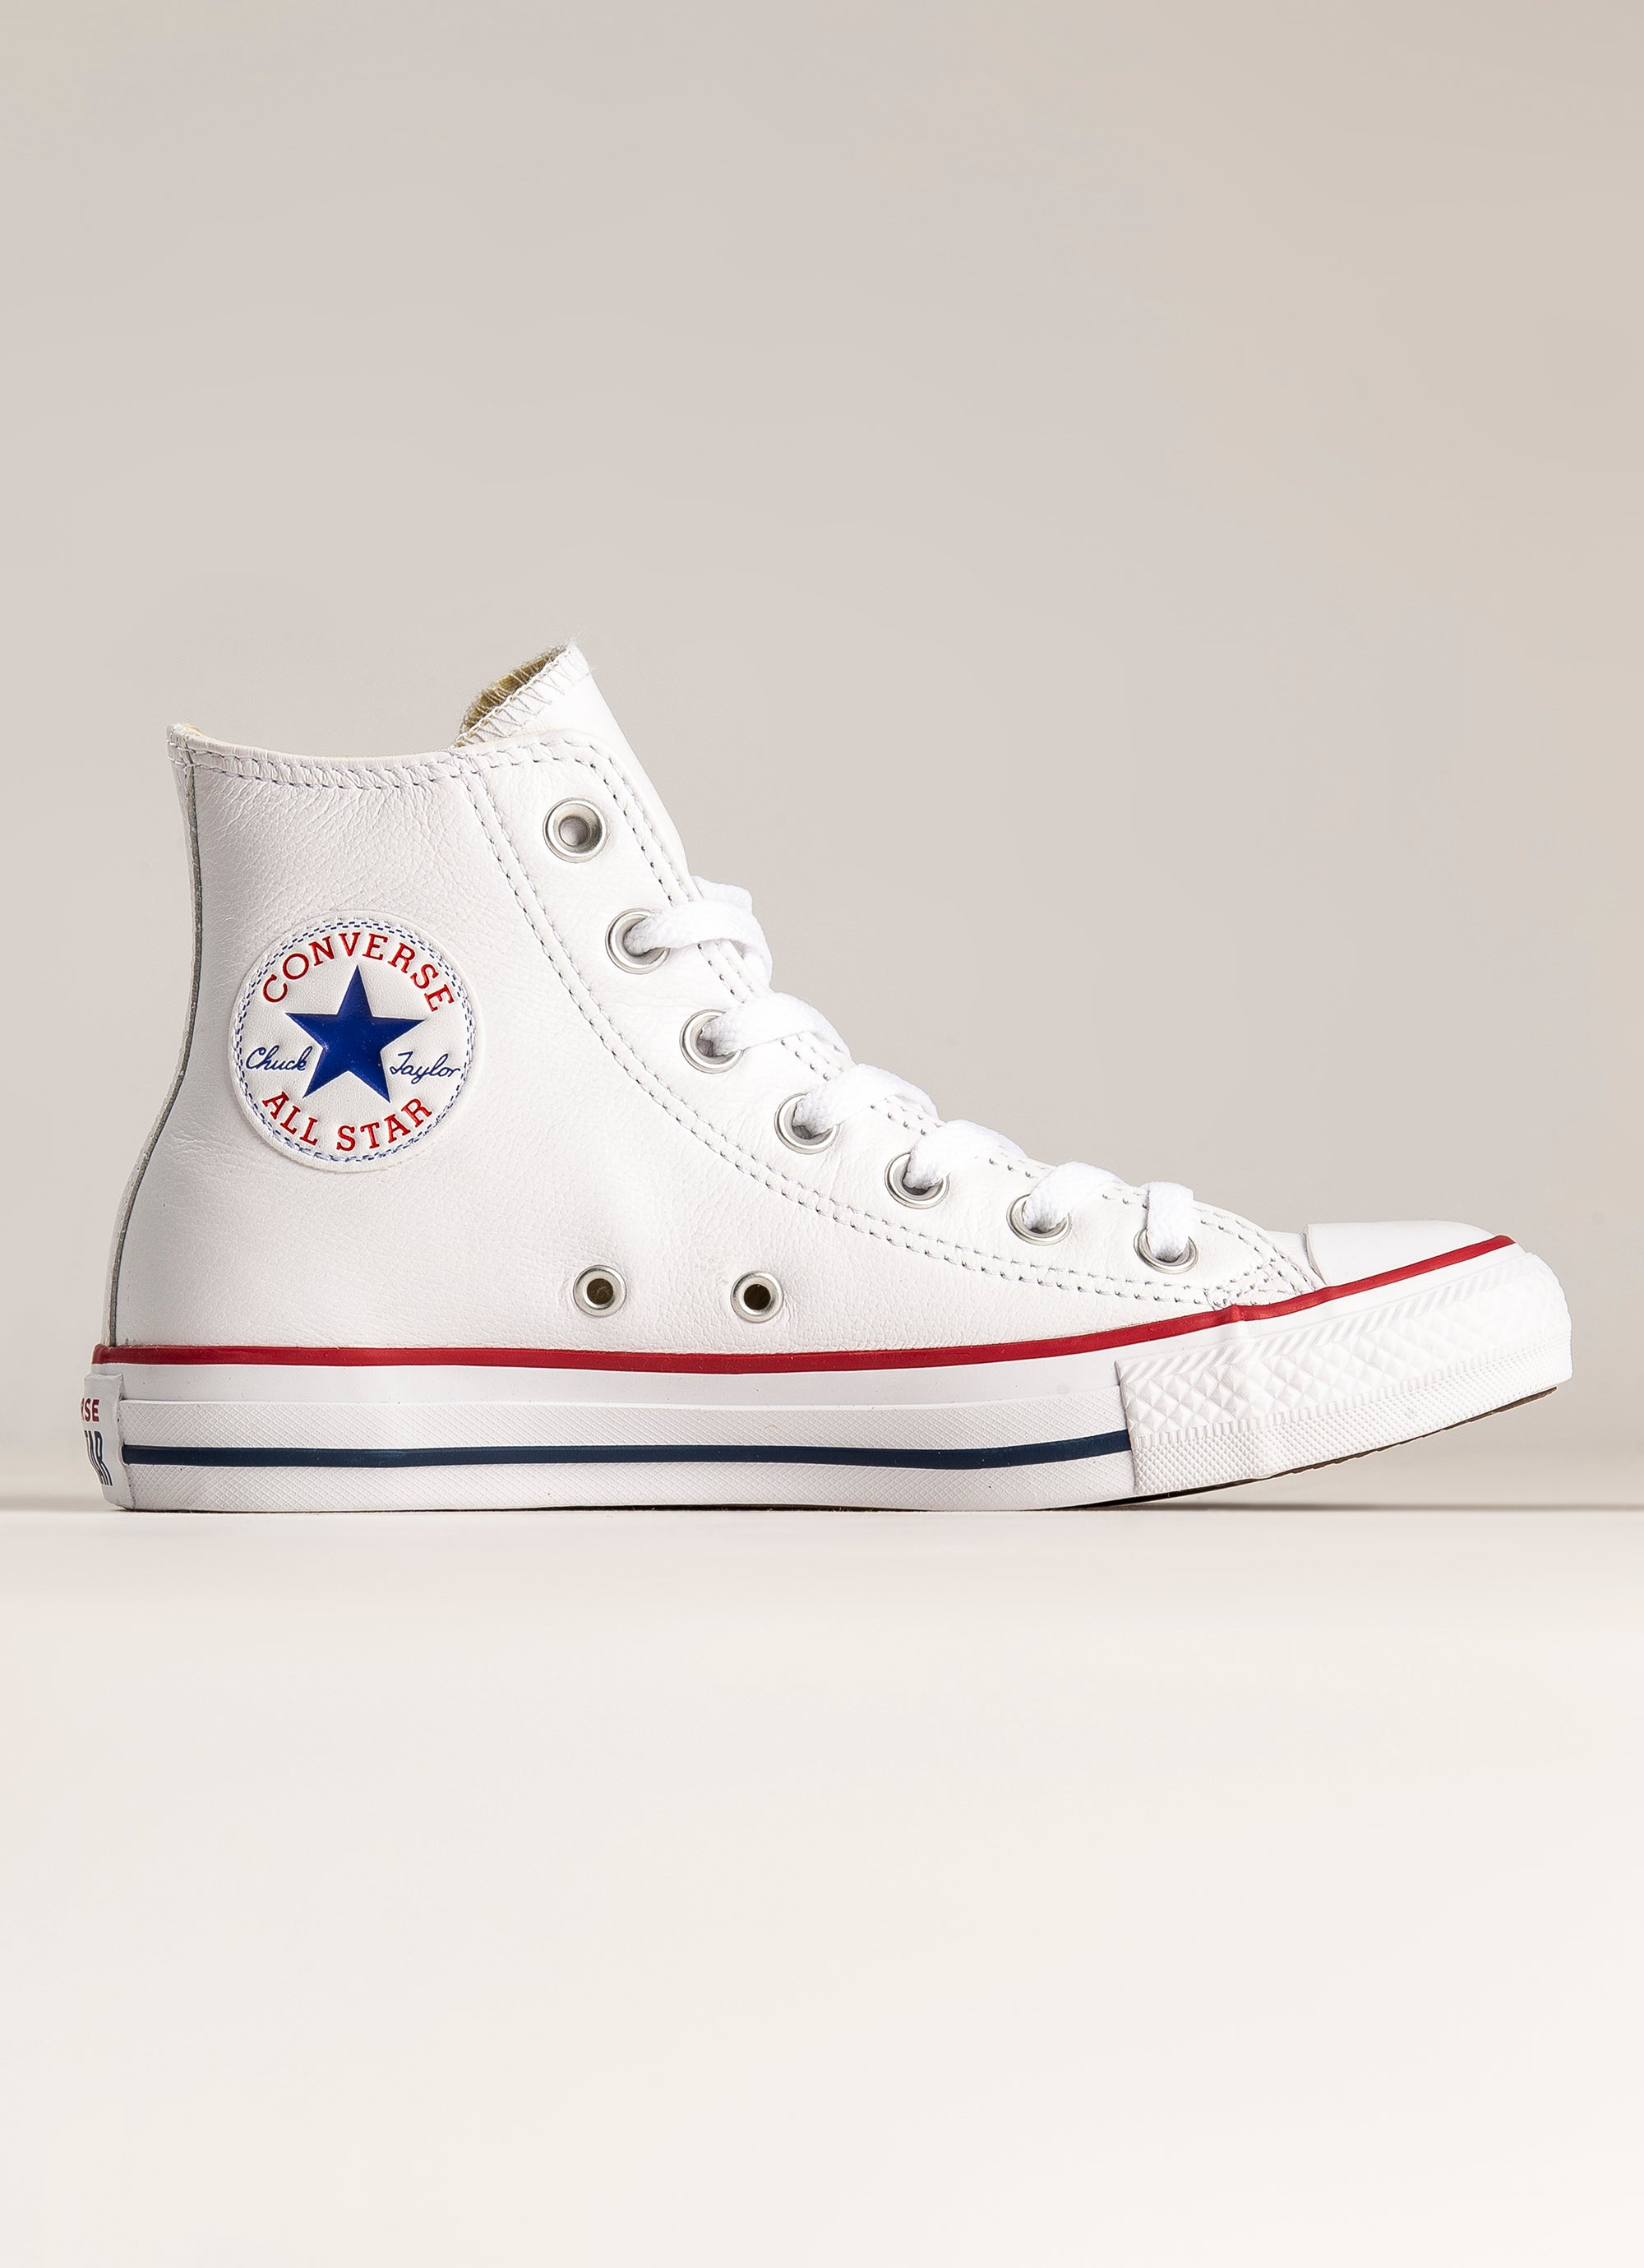 converse sneakers auckland